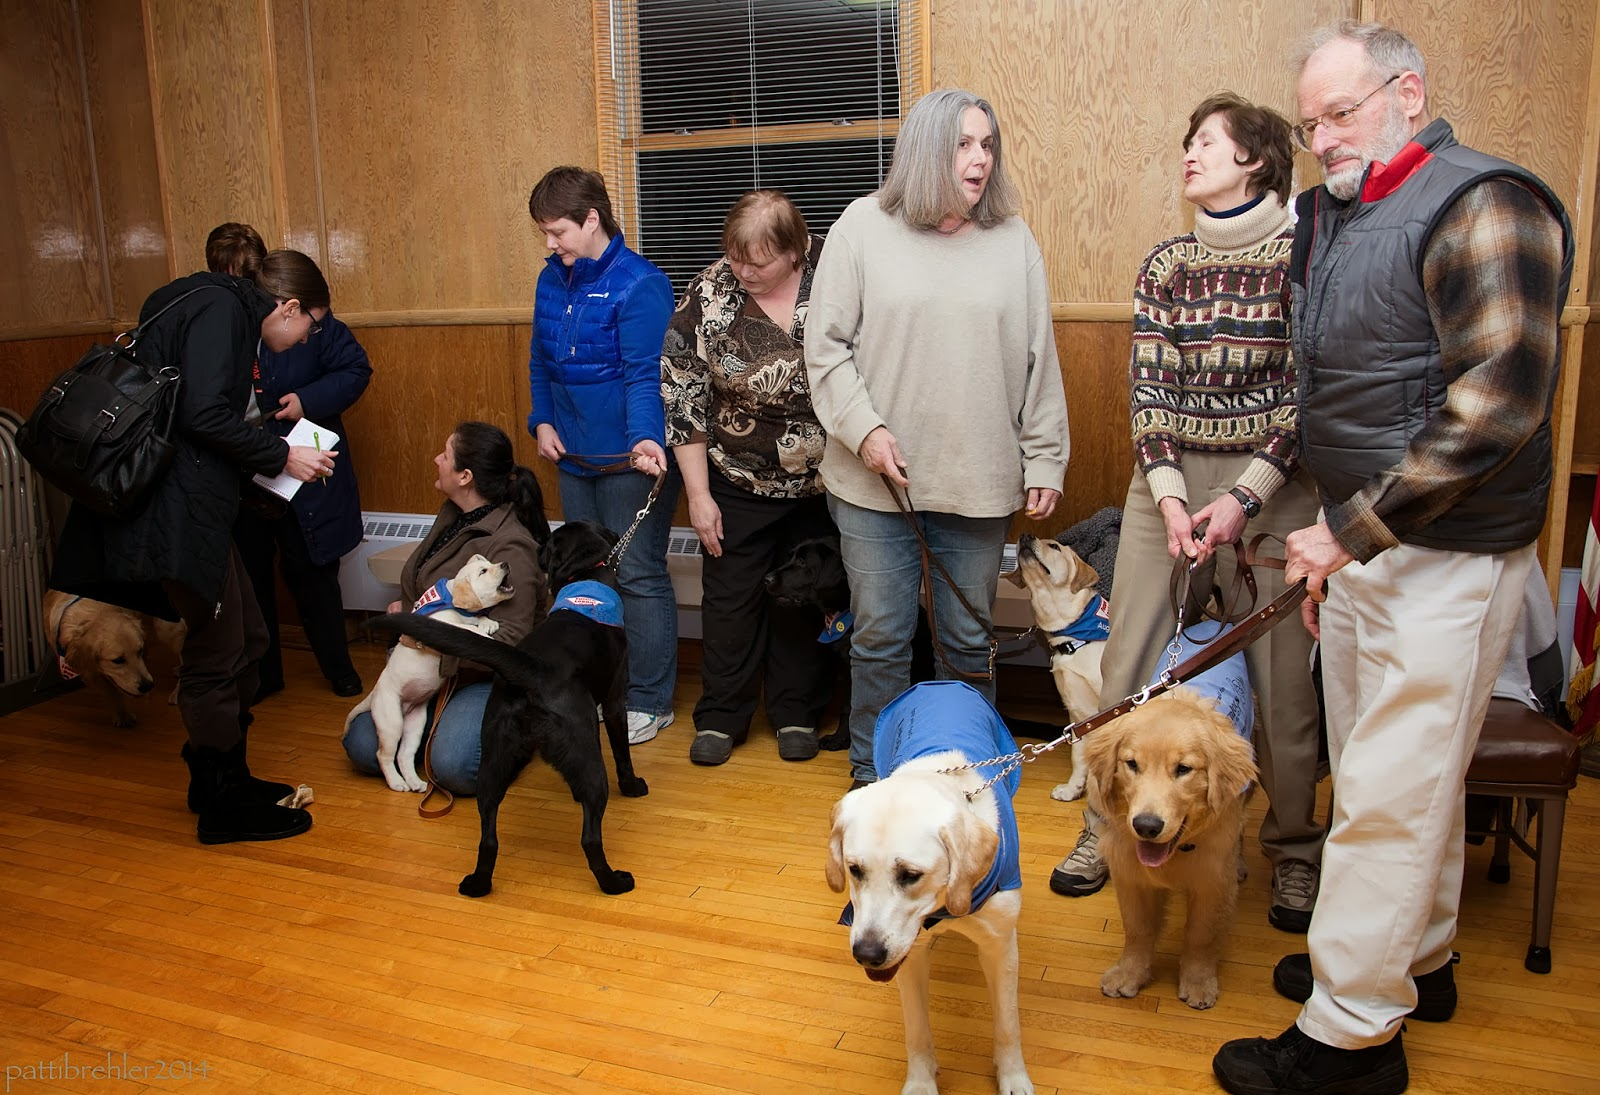 A group of seven people are standing around with Future Leader Dog puppies. The woman on the far left, wearing all black and carrying a huge black purse, is interviewing a woman who is kneeling on the floor with her yellow lab puppy. Two of the other puppies are black labs, two are golden retrievers and two are yellow labs.